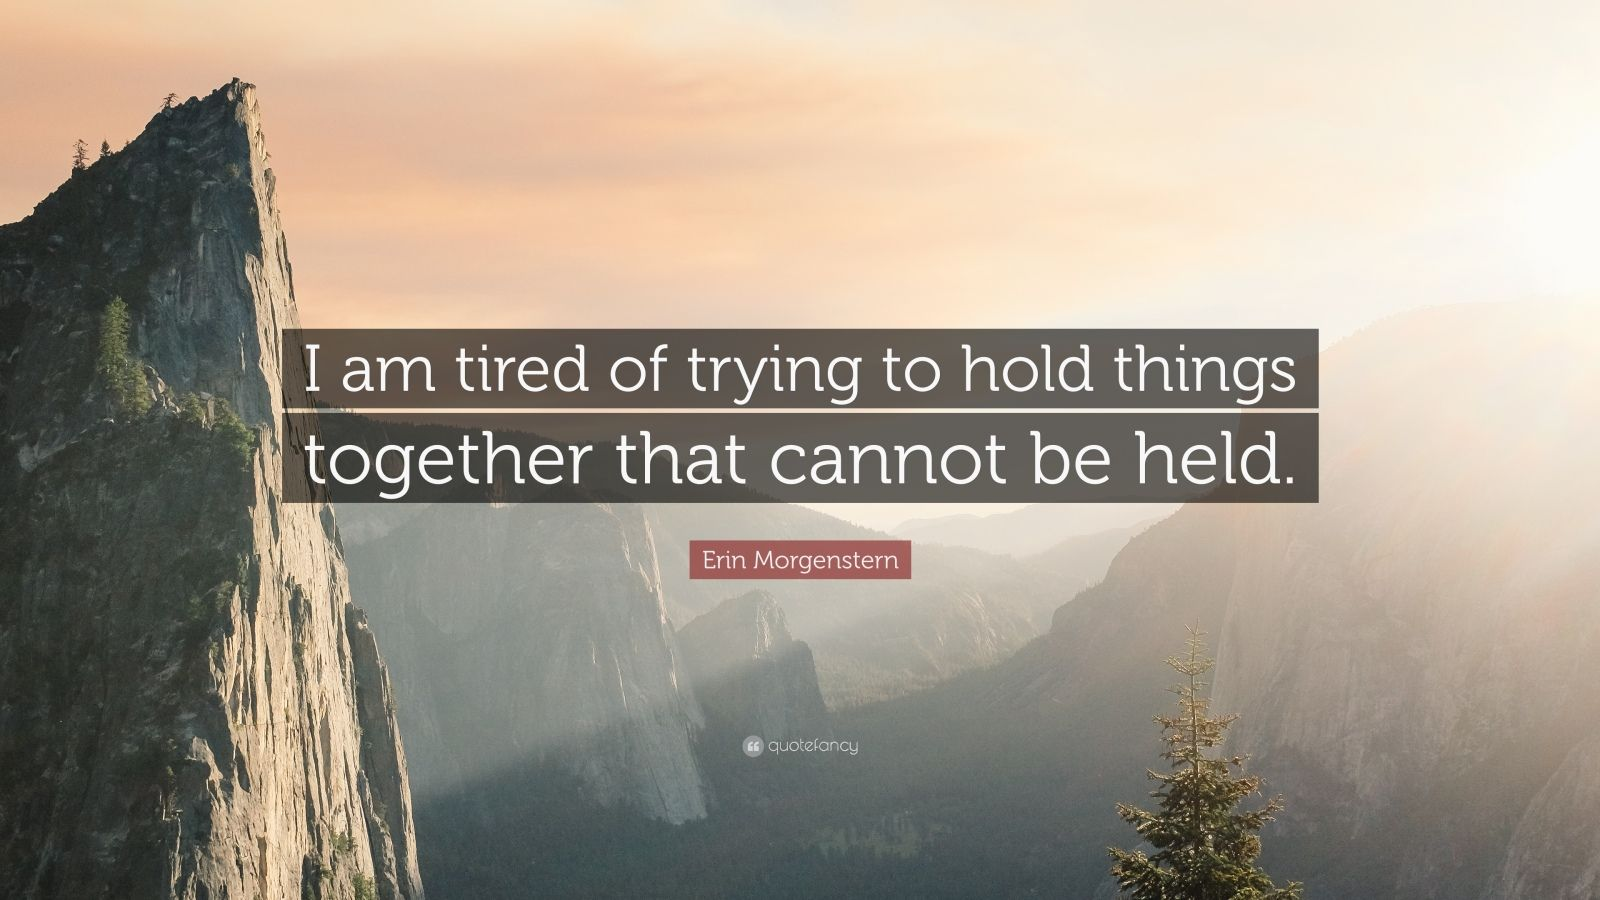 """Erin Morgenstern Quote: """"I am tired of trying to hold things together that cannot be held."""""""